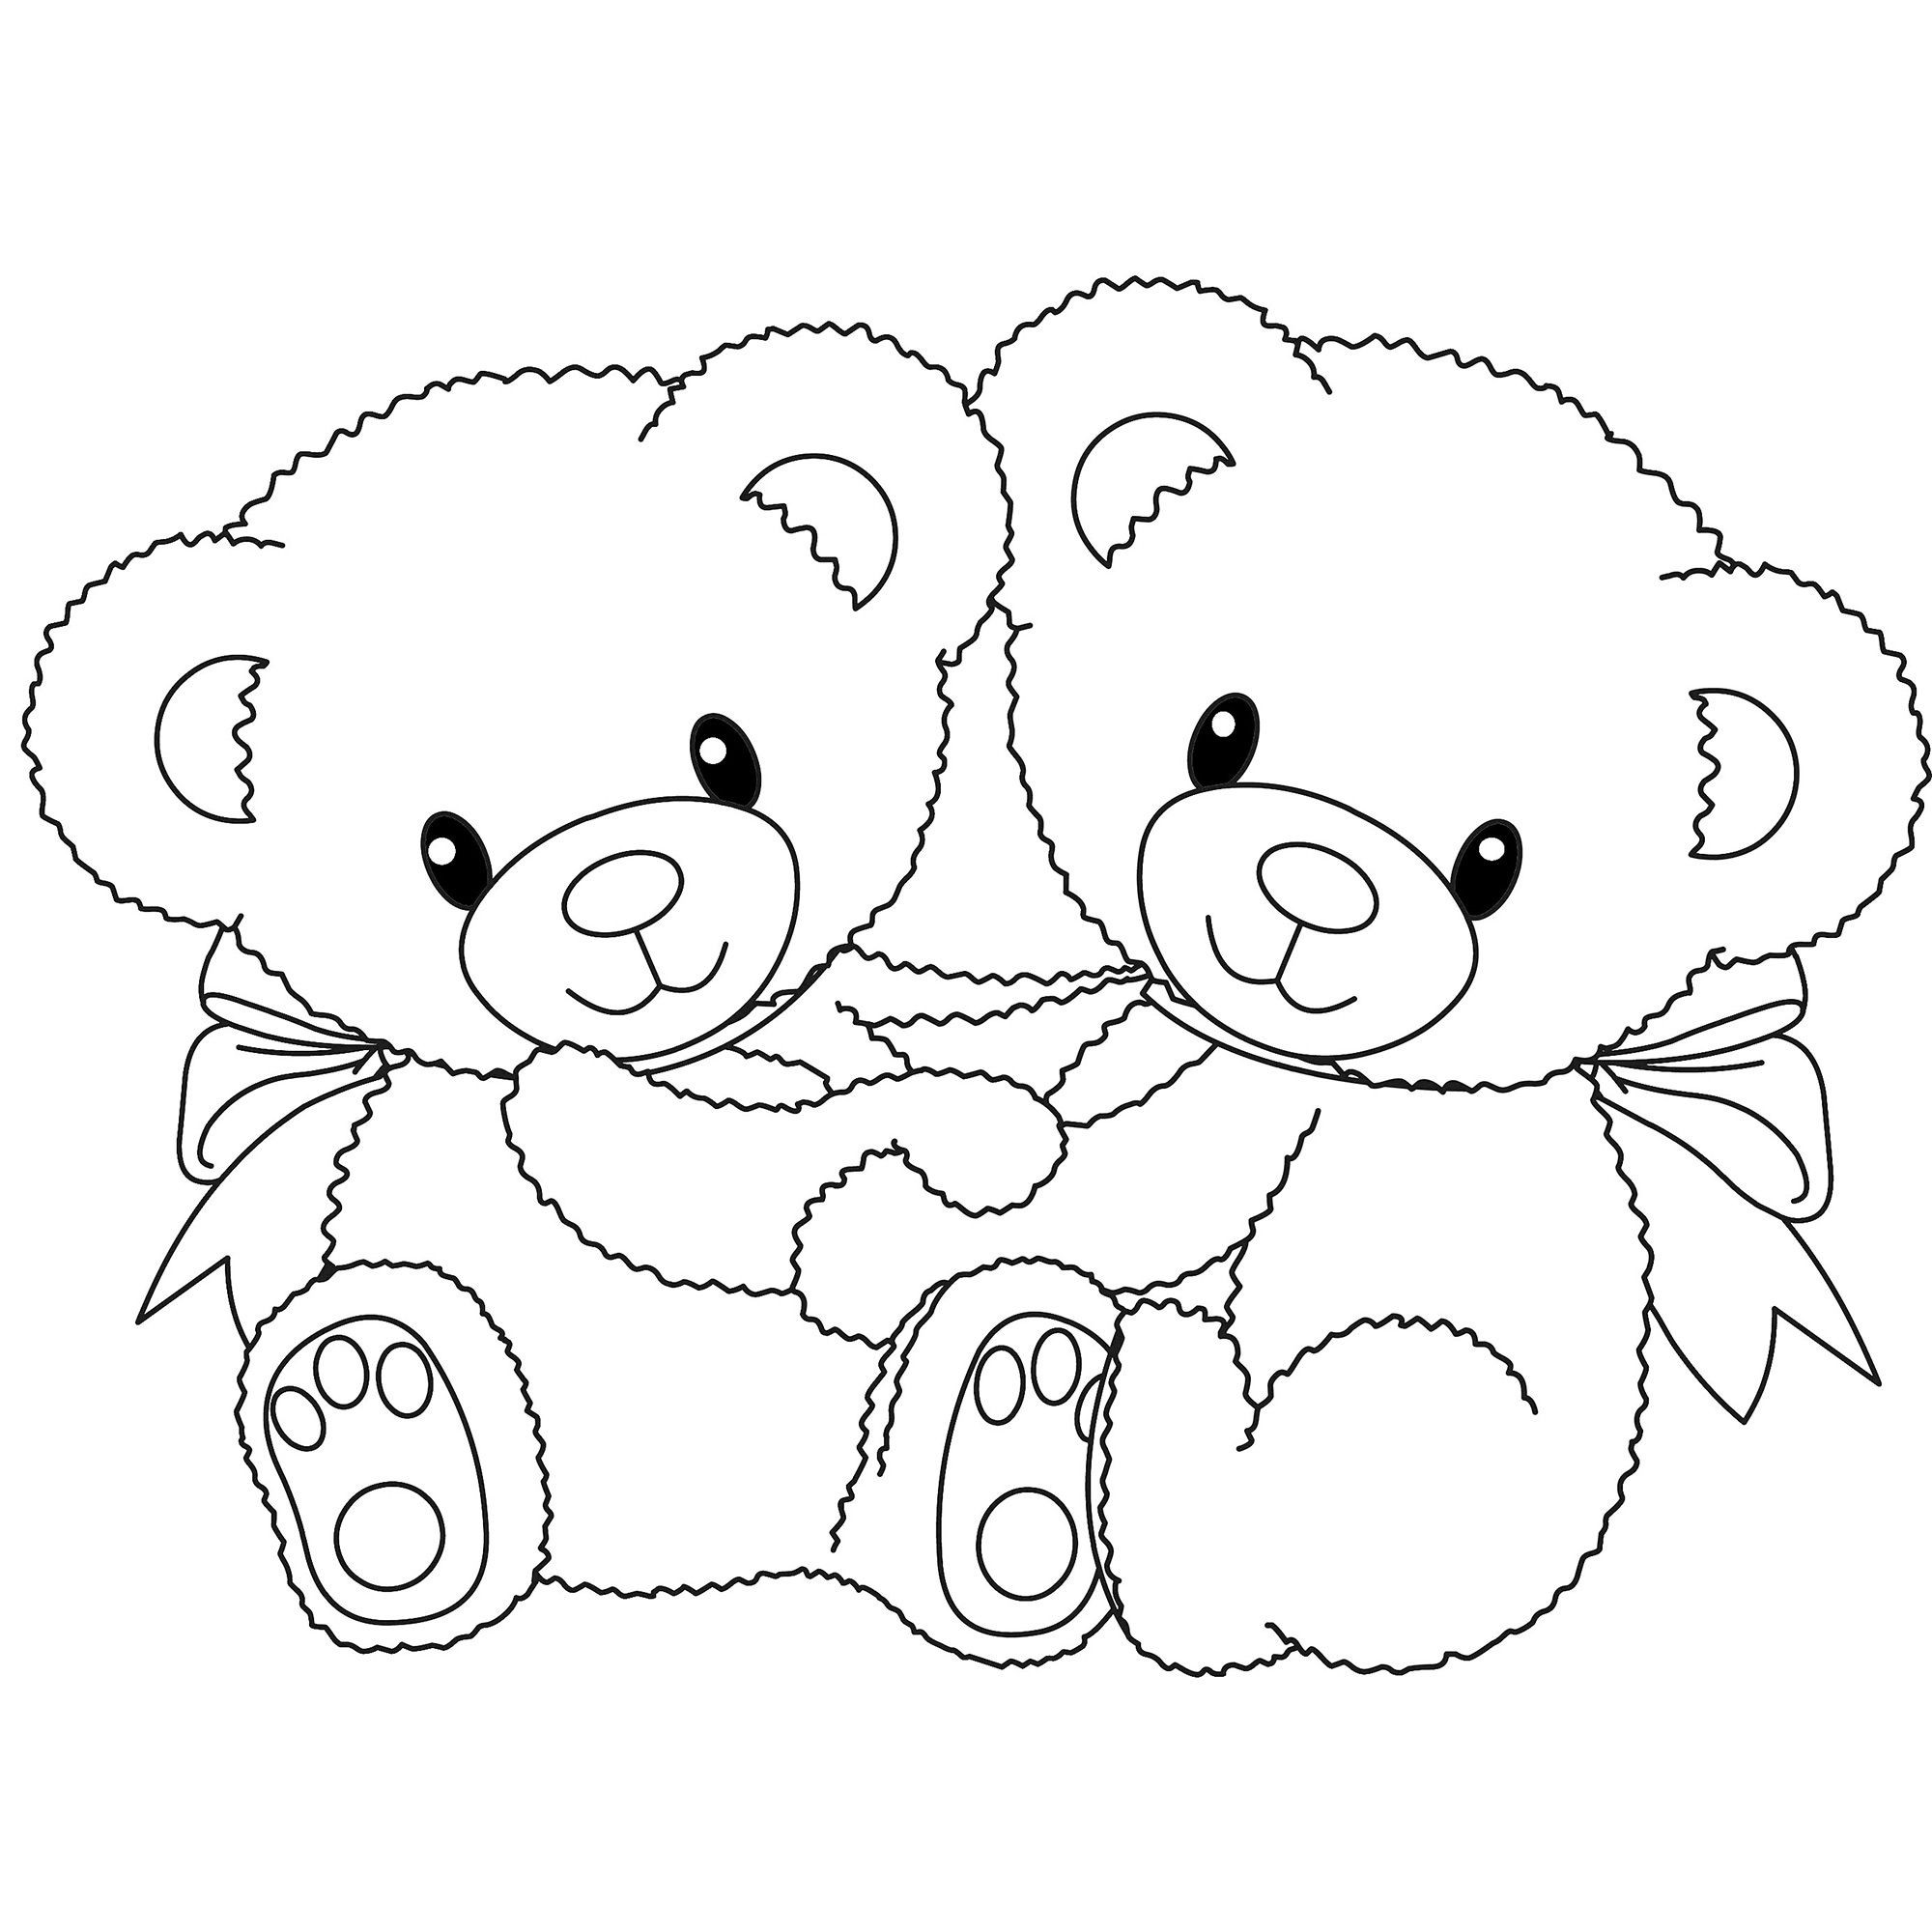 Bear clip art printable. Teddy coloring pages free